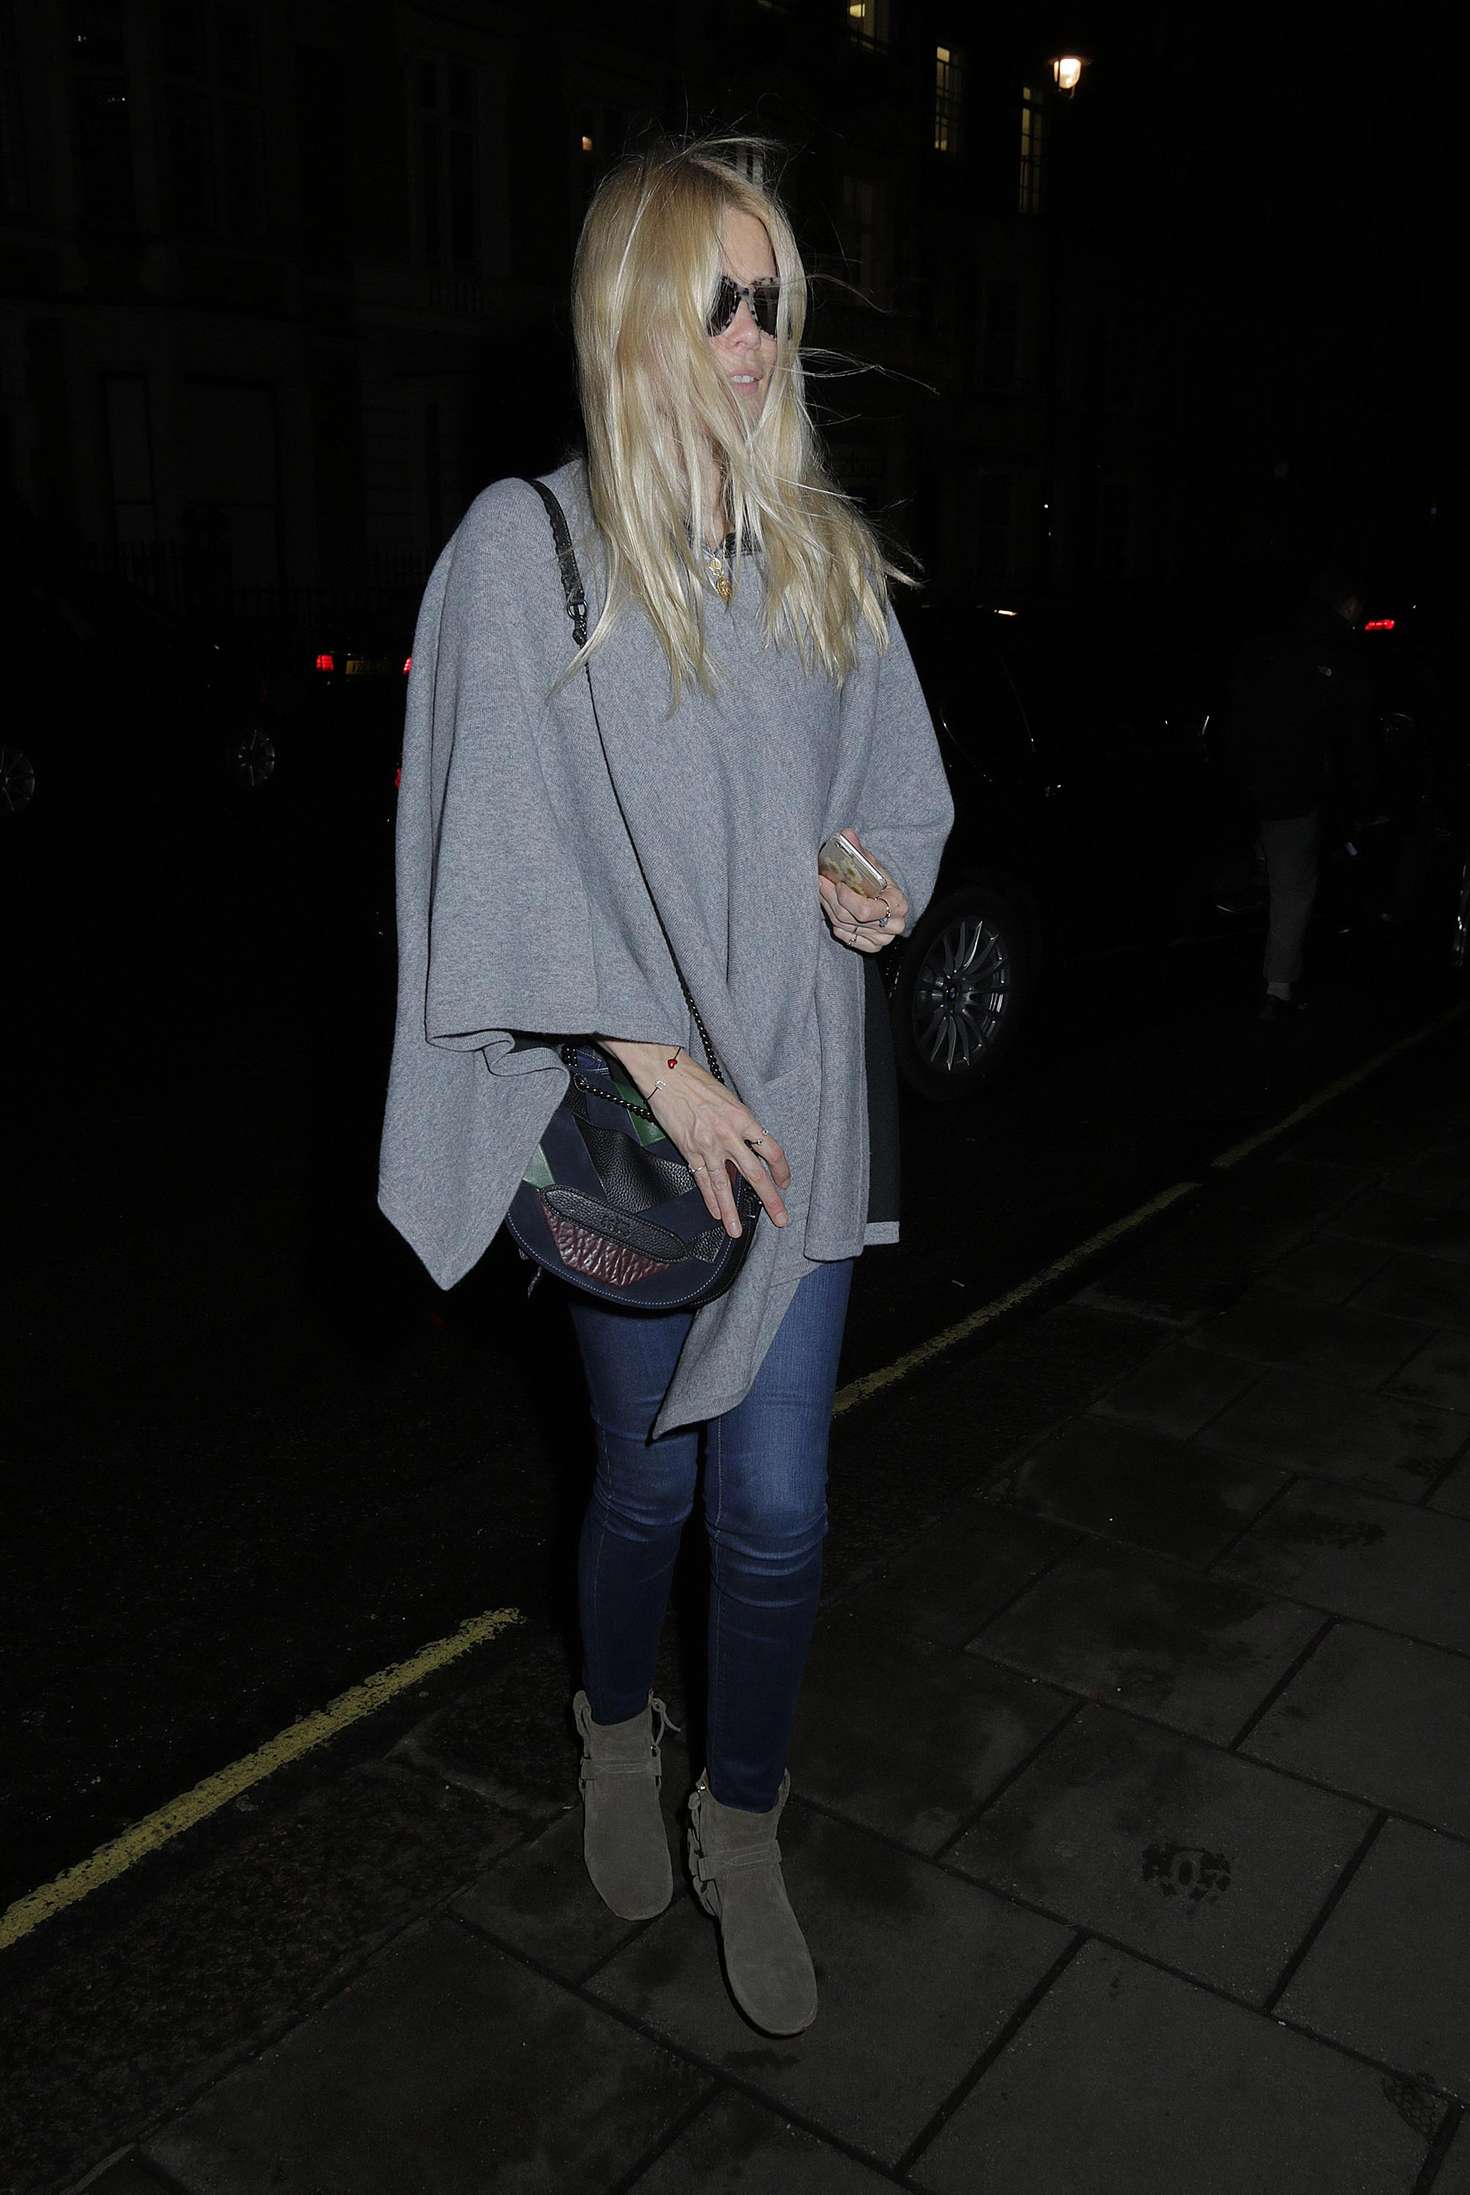 Claudia Schiffer at Nobu Restaurant in London